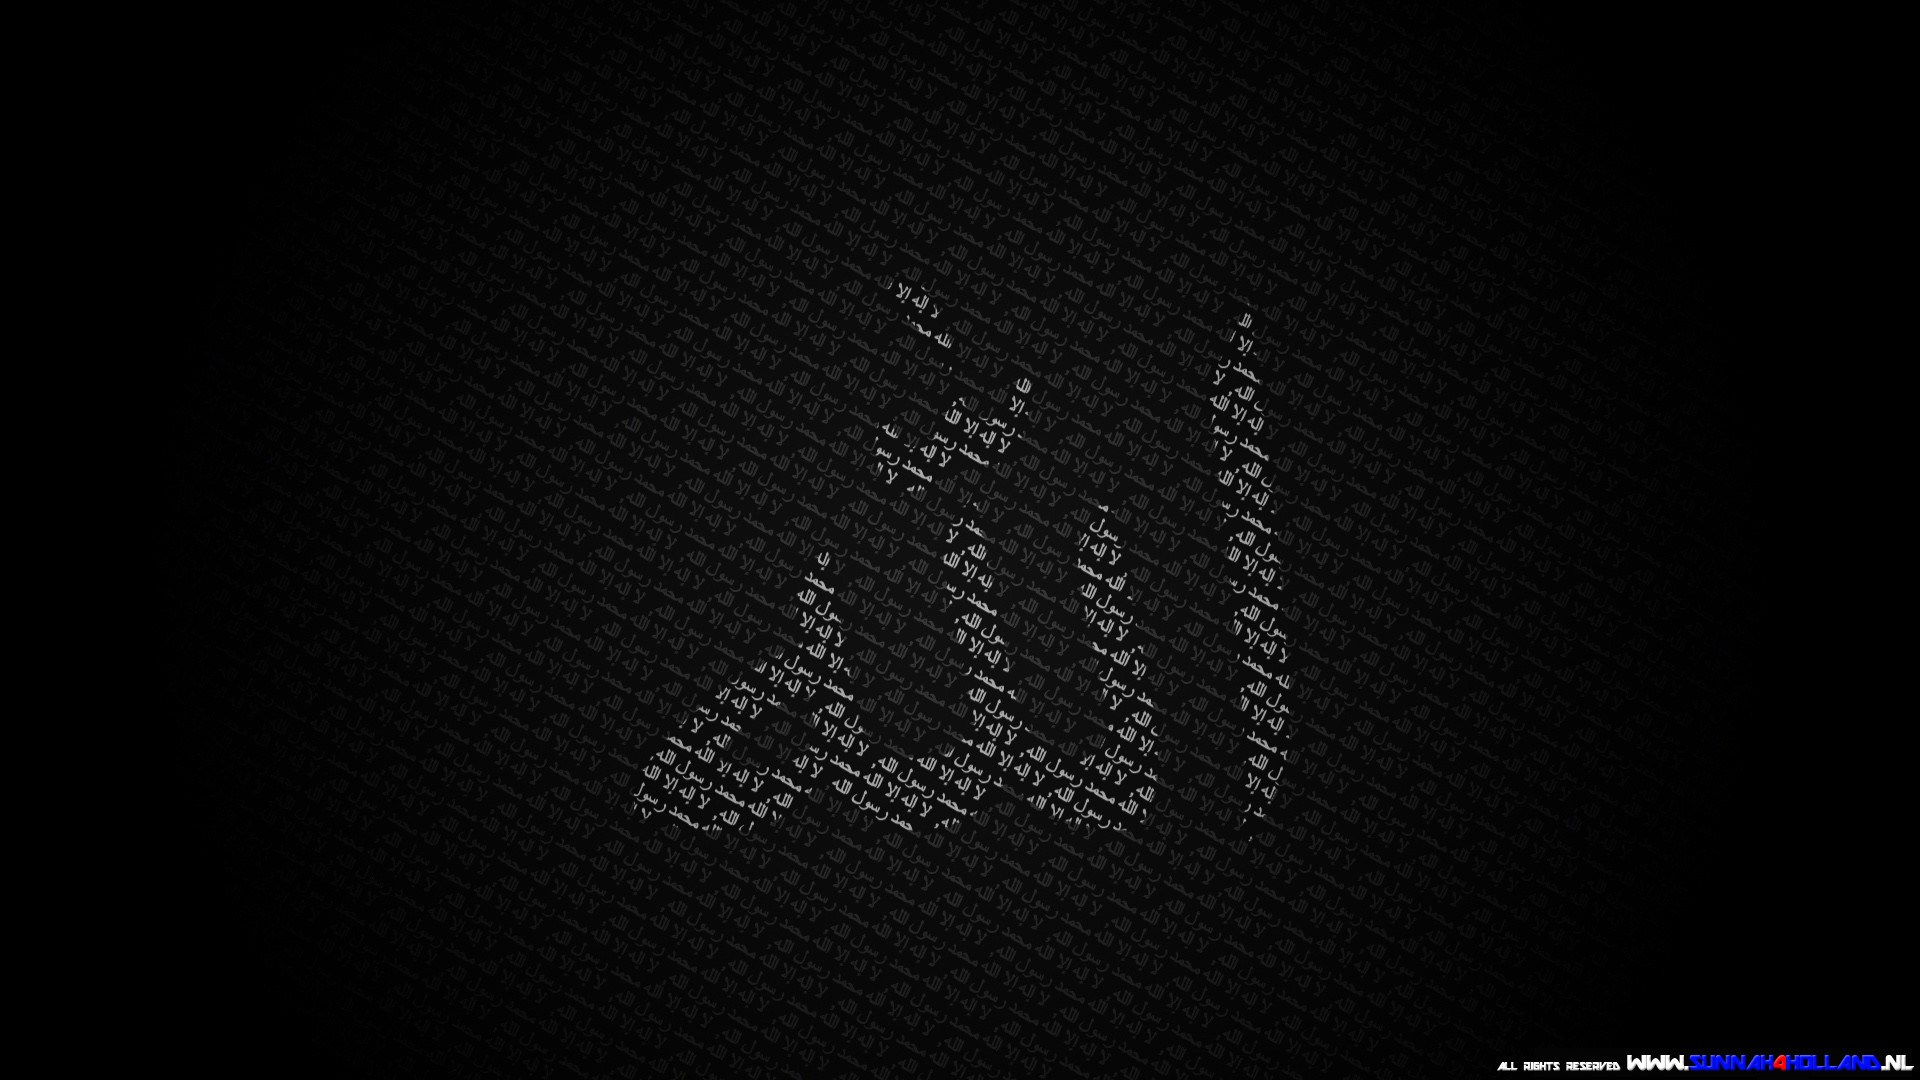 1920x1080 Allah Black Wallpaper 1920X1080 HD Widescreen